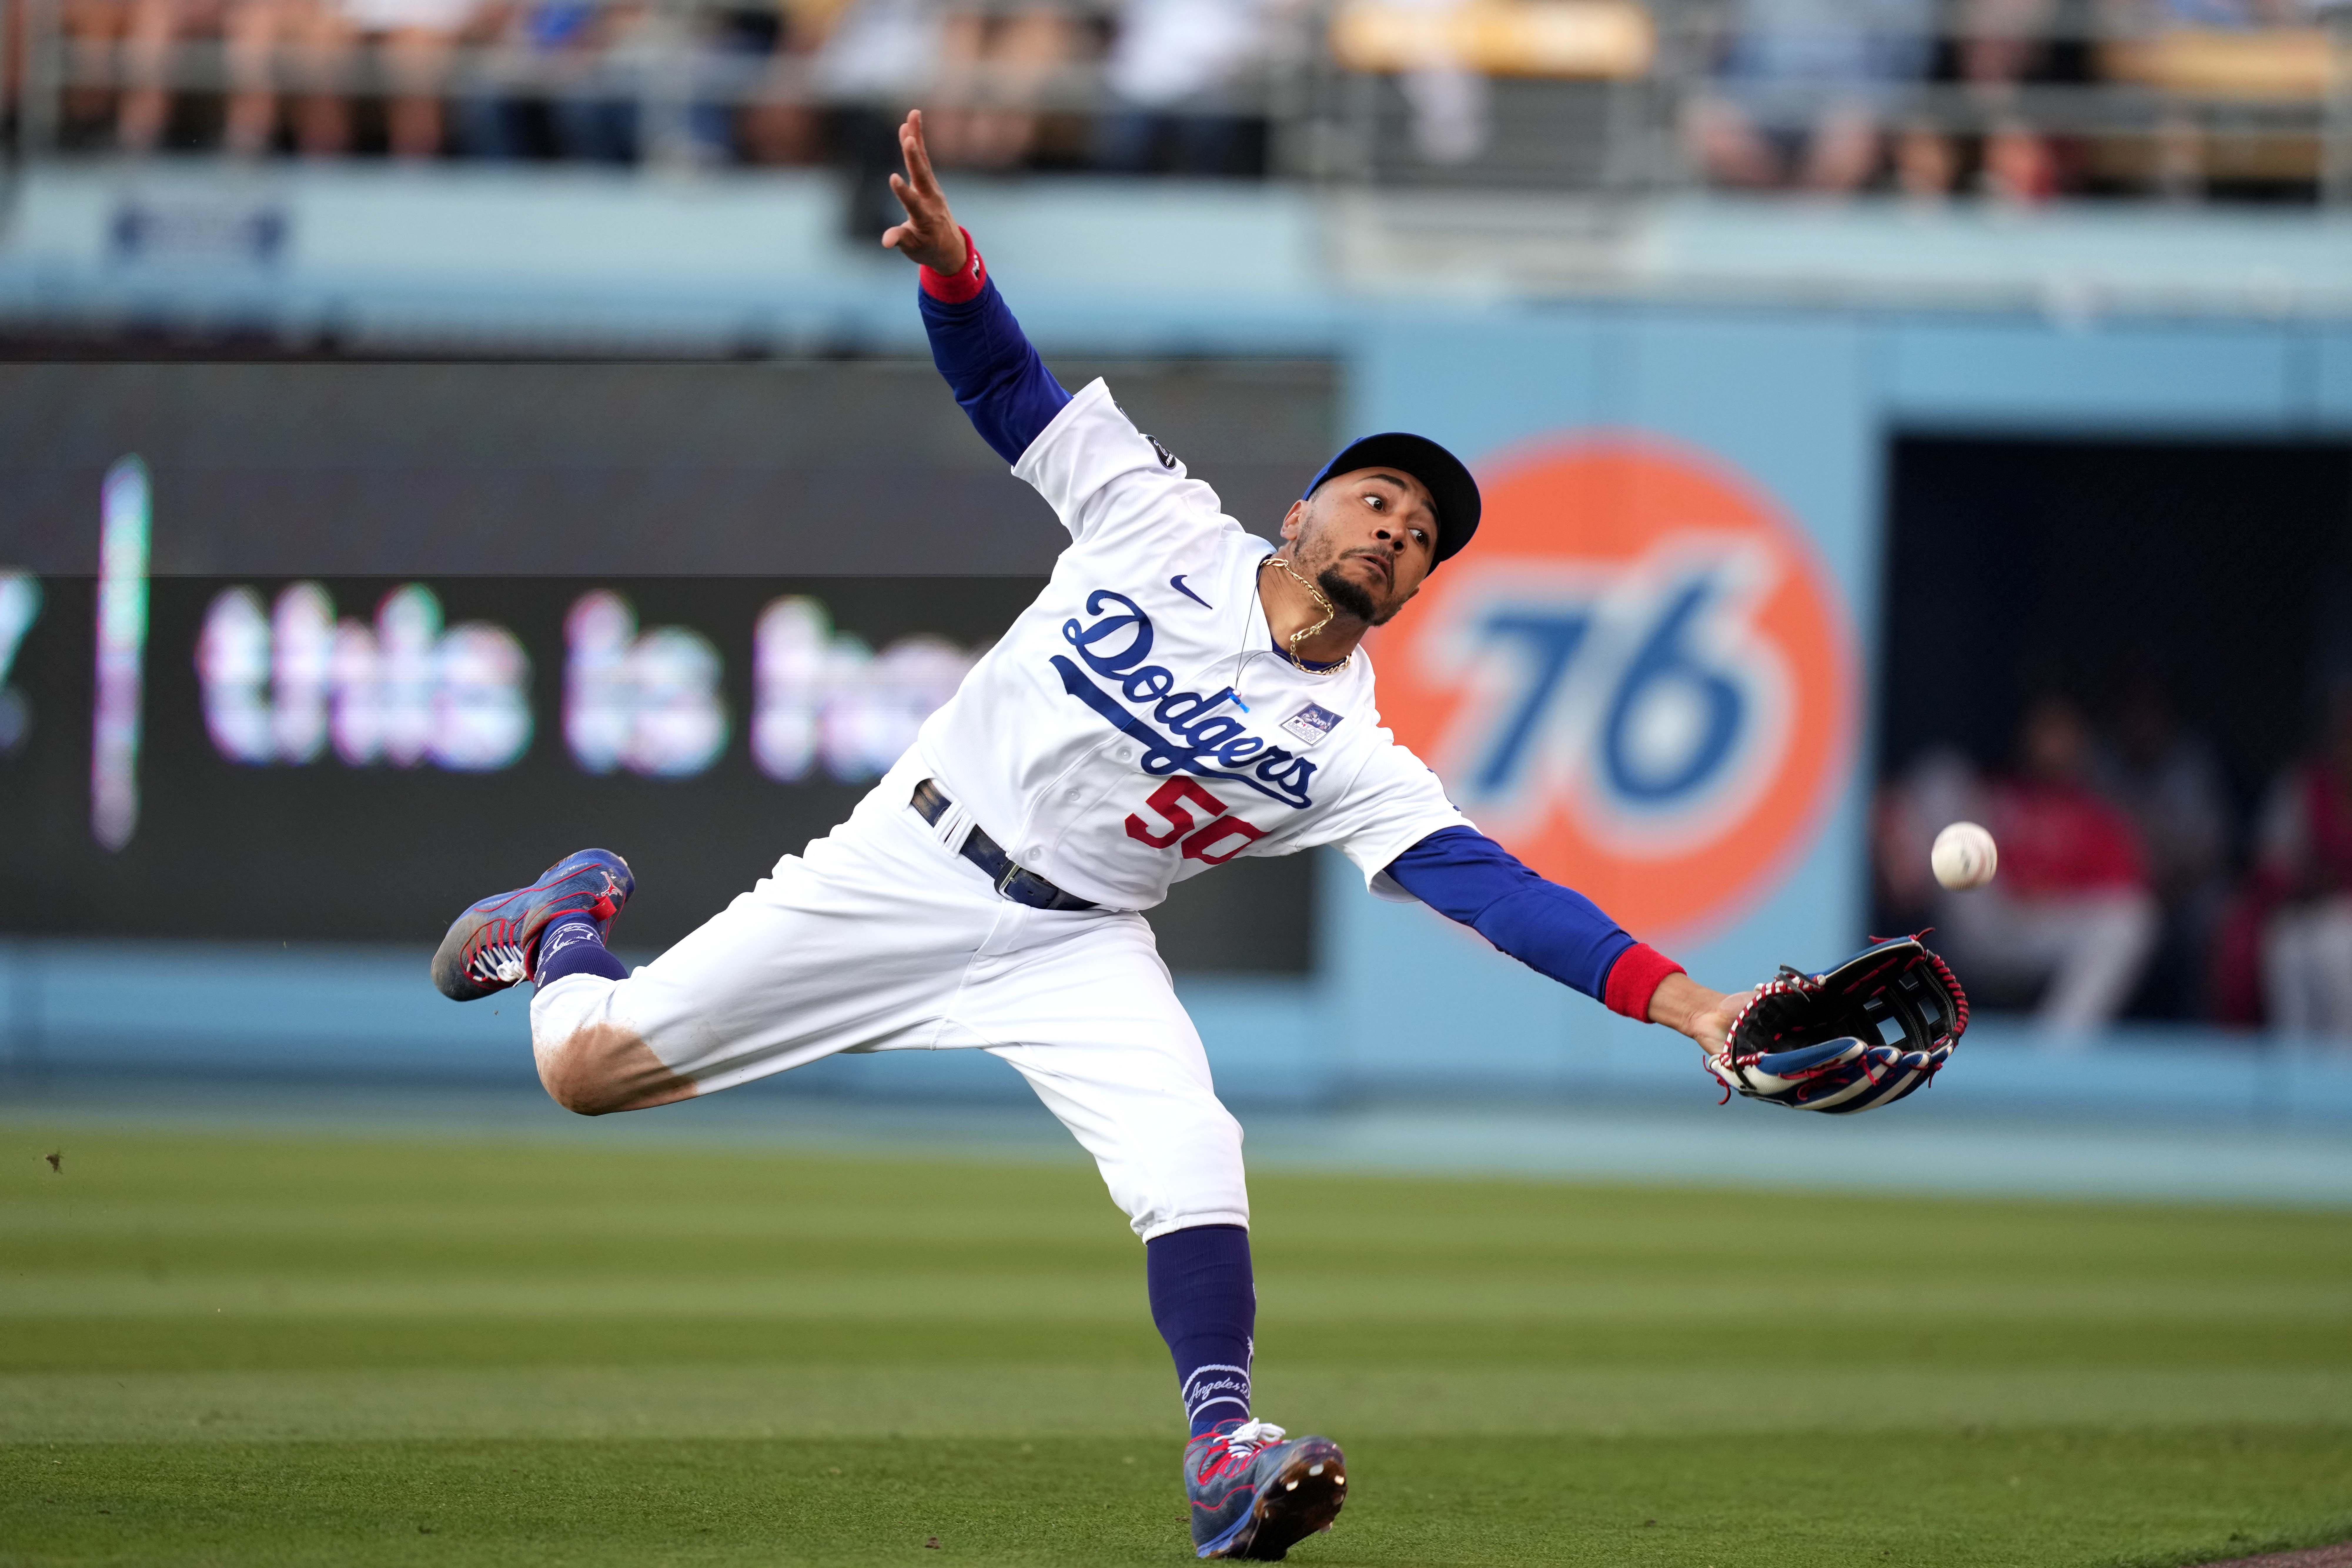 Jun 2, 2021; Los Angeles, California, USA; Los Angeles Dodgers right fielder Mookie Betts (50) attempts to catch a fly ball during the third inning against the St. Louis Cardinals at Dodger Stadium. Mandatory Credit: Kirby Lee-USA TODAY Sports